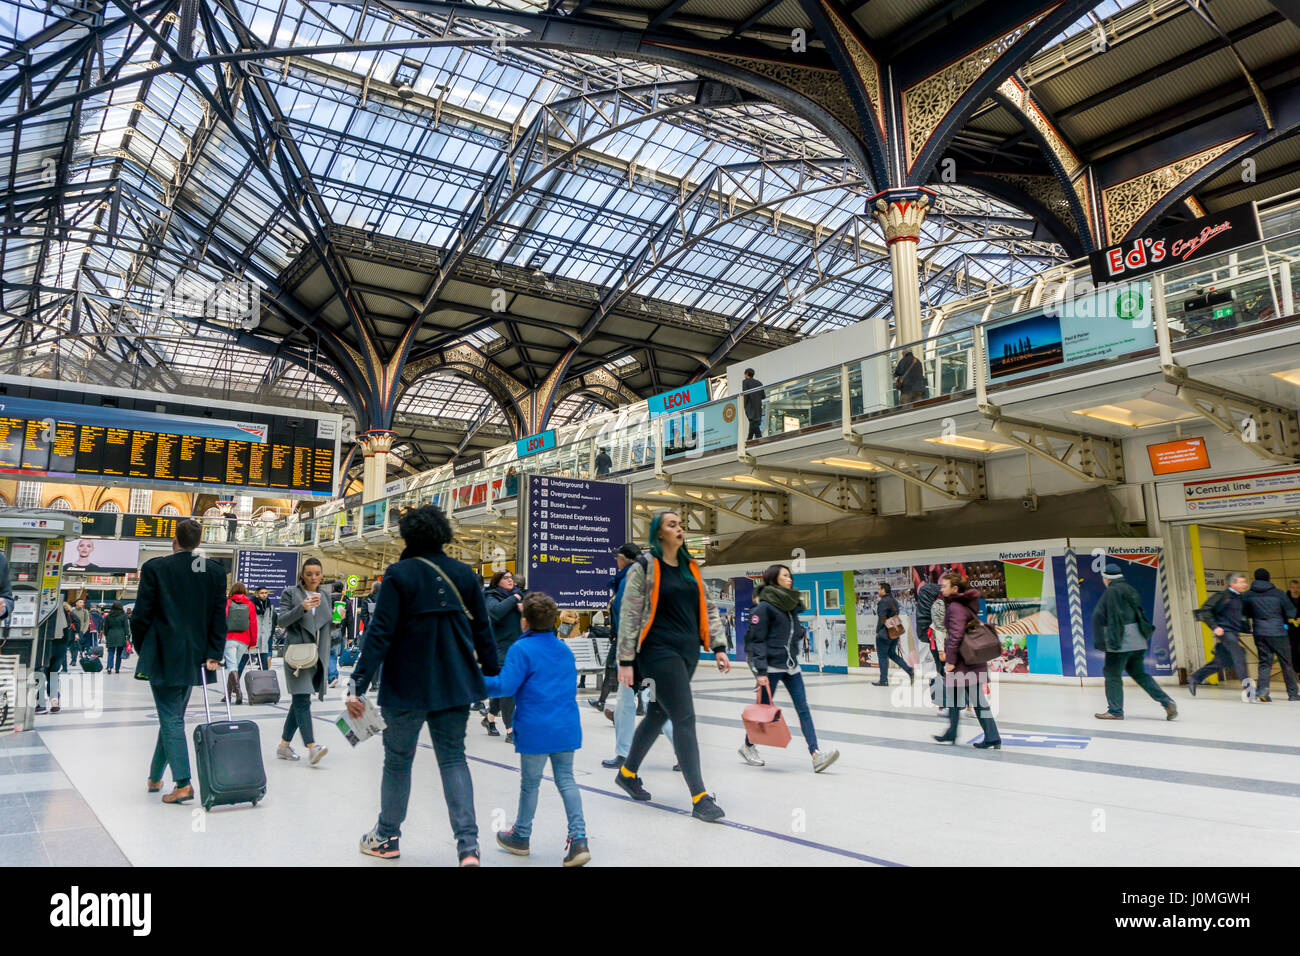 Commuters walkng through Liverpool Street station in London - Stock Image